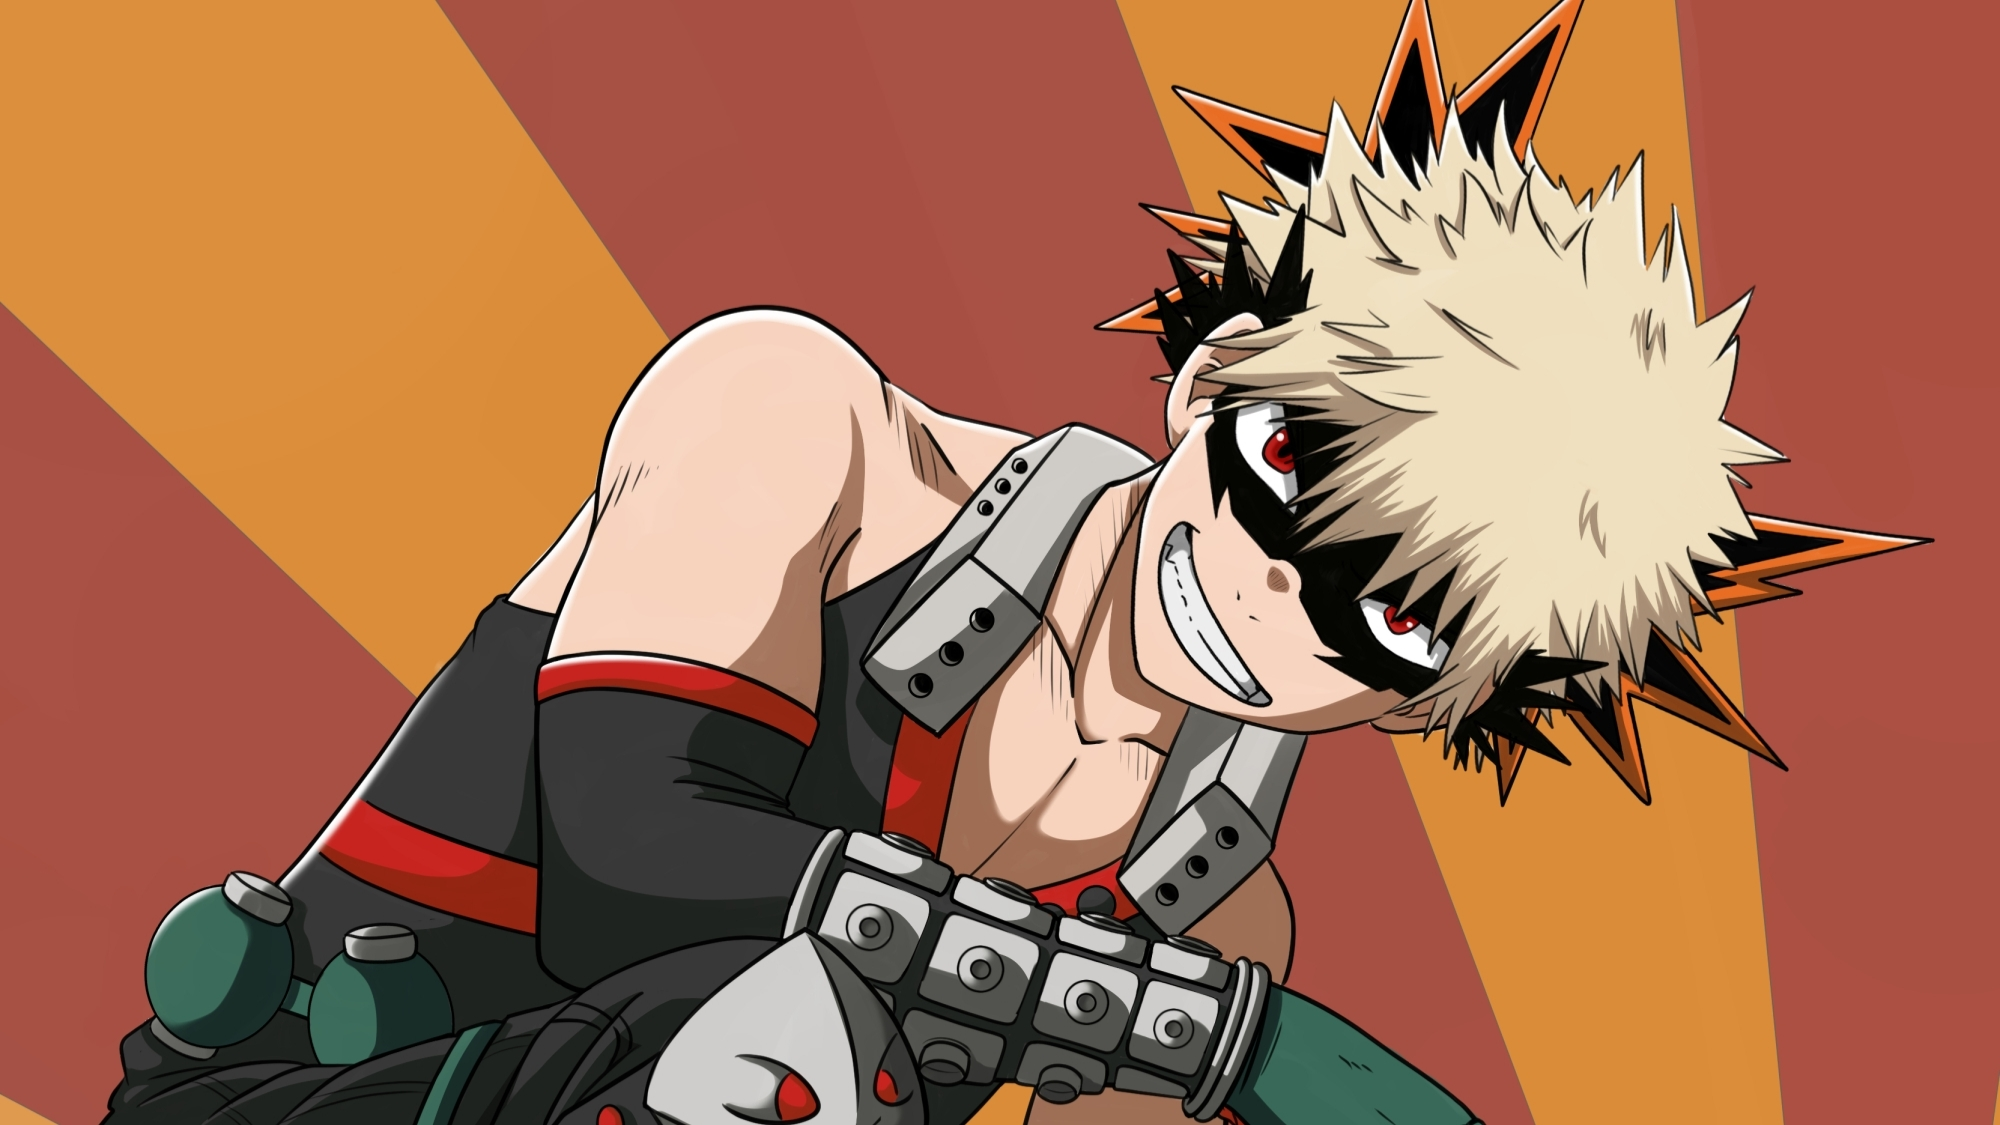 Katsuki Bakugou From My Hero Academia Wallpaper Hd Anime 4k